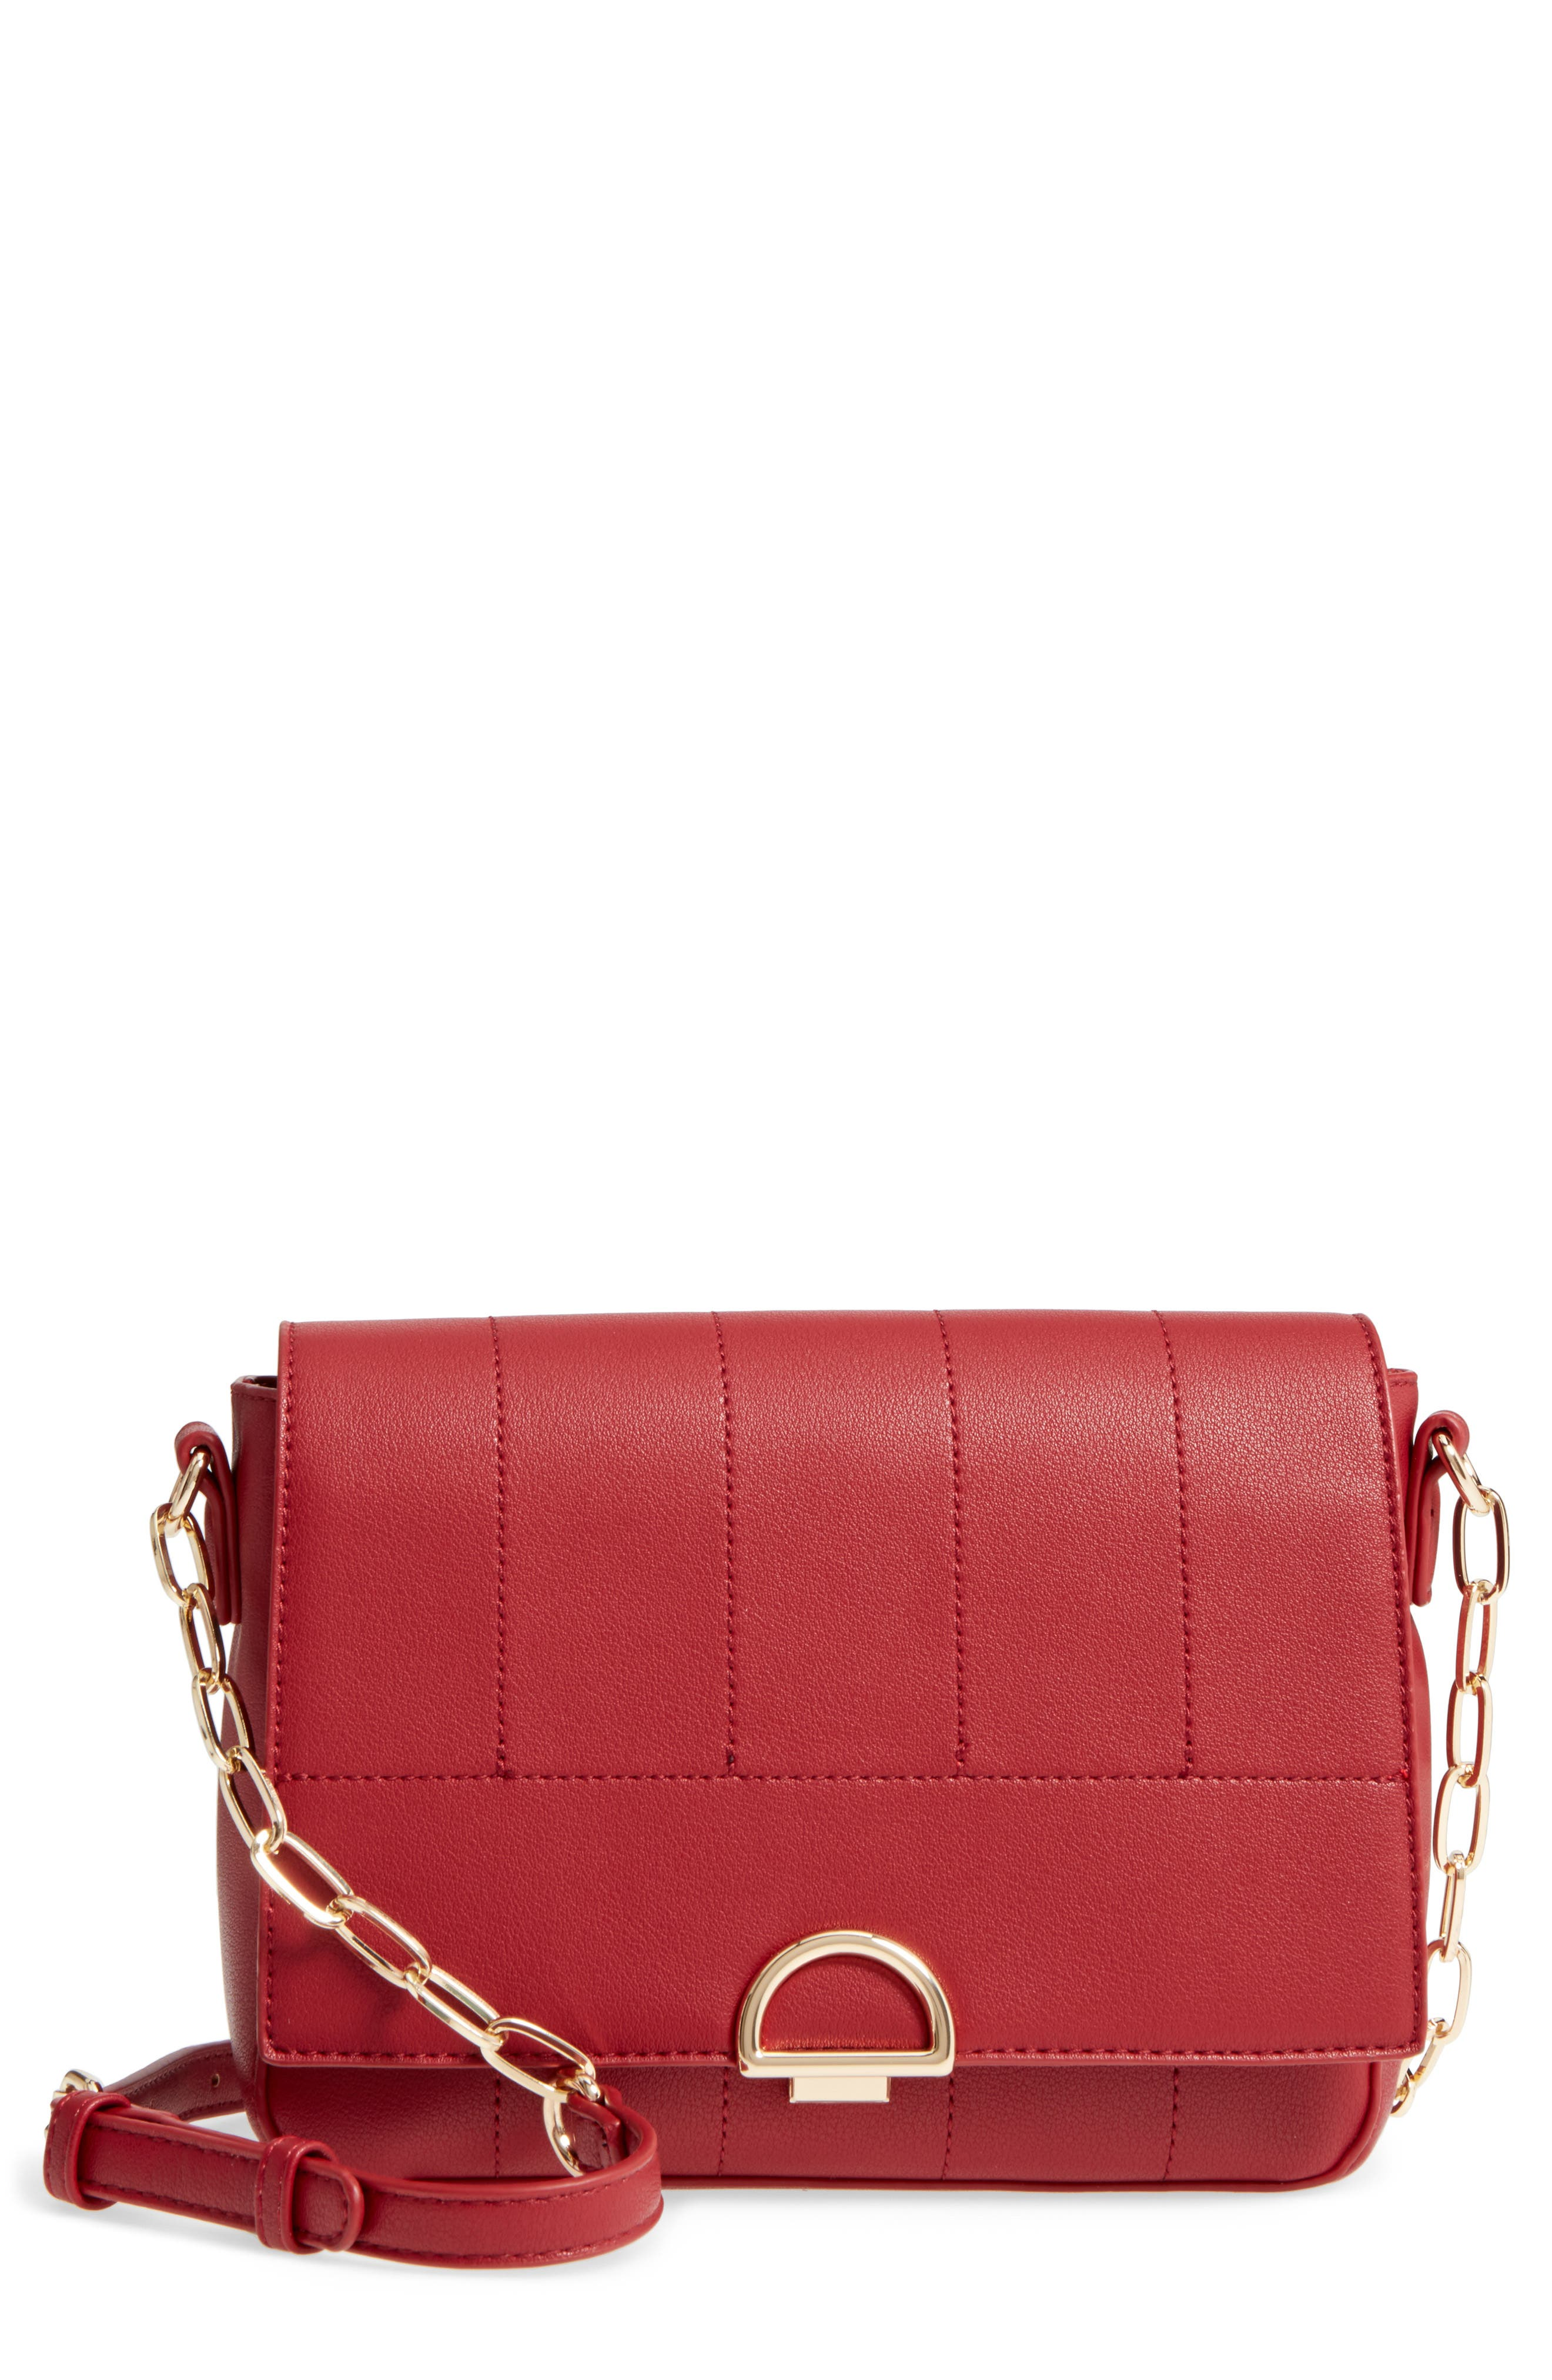 Colie Faux Leather Crossbody Bag,                             Main thumbnail 1, color,                             Cherry Red